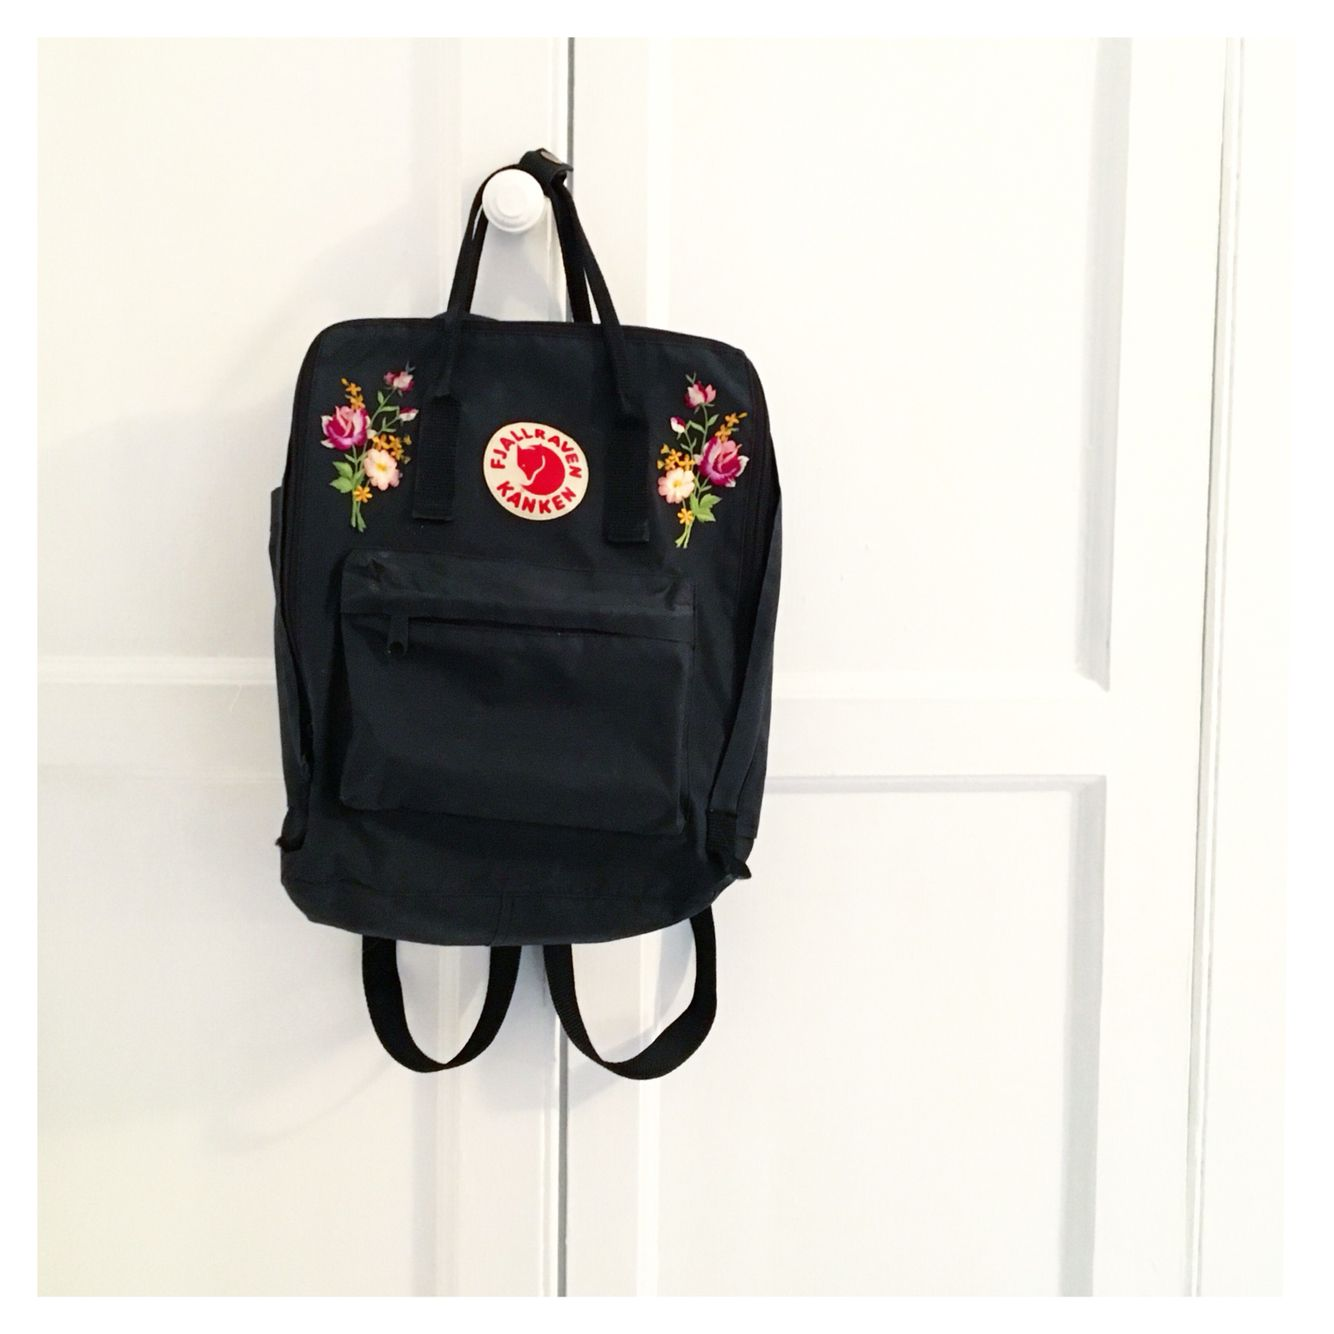 0be0ba7a0e Pimped My fjallraven kanken with floral embroidery patches. Flower power!!